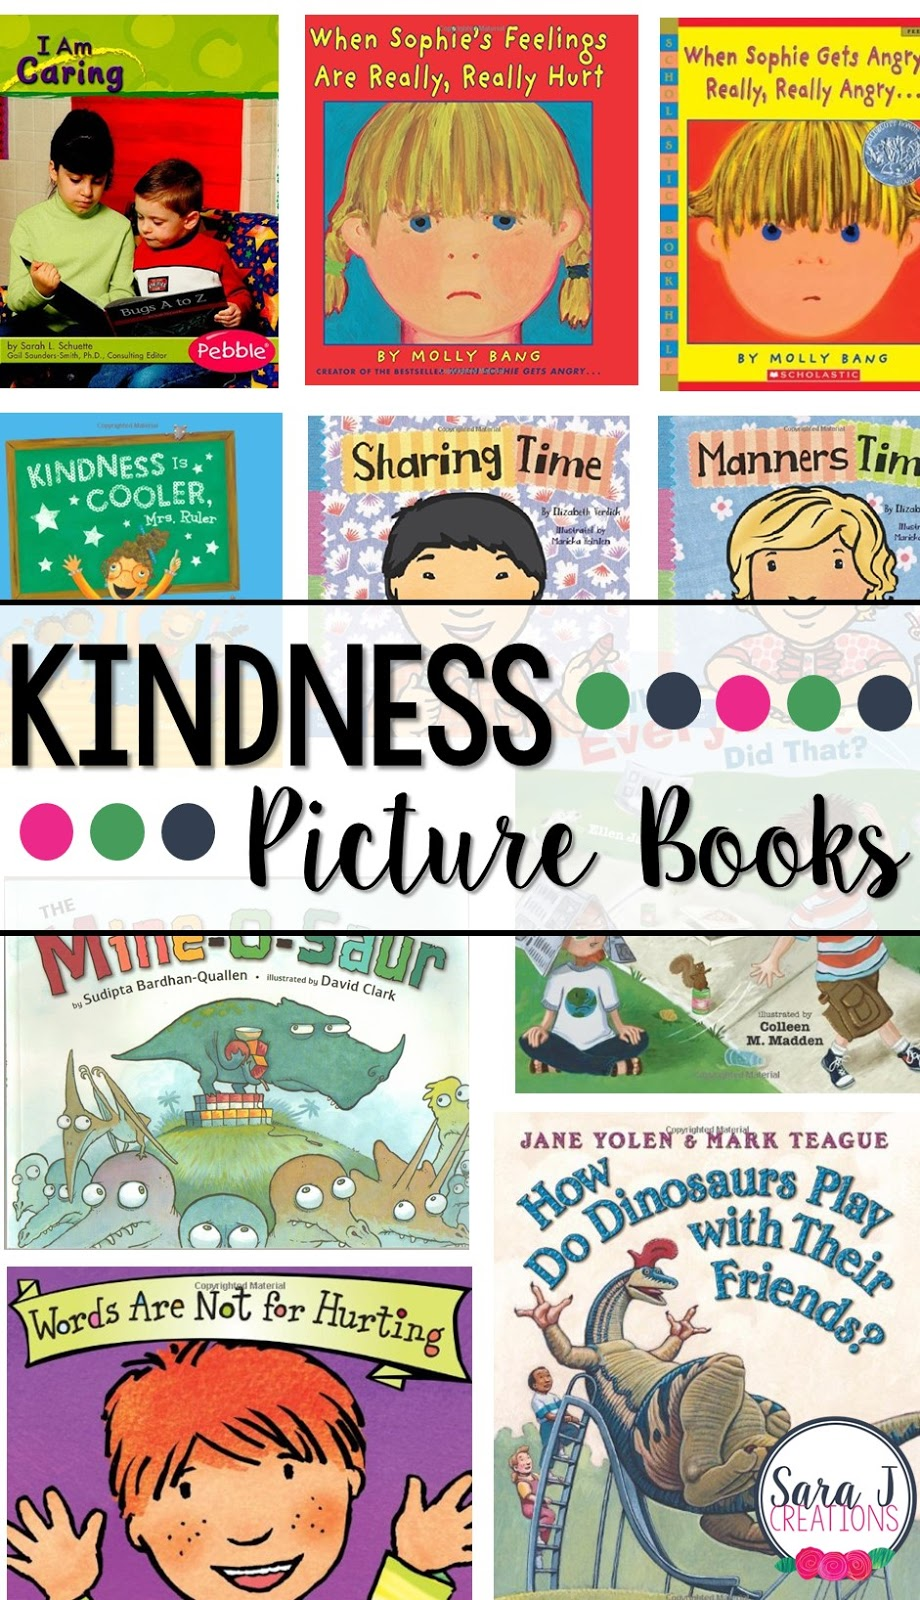 10 great picture books for teaching young children about kindness